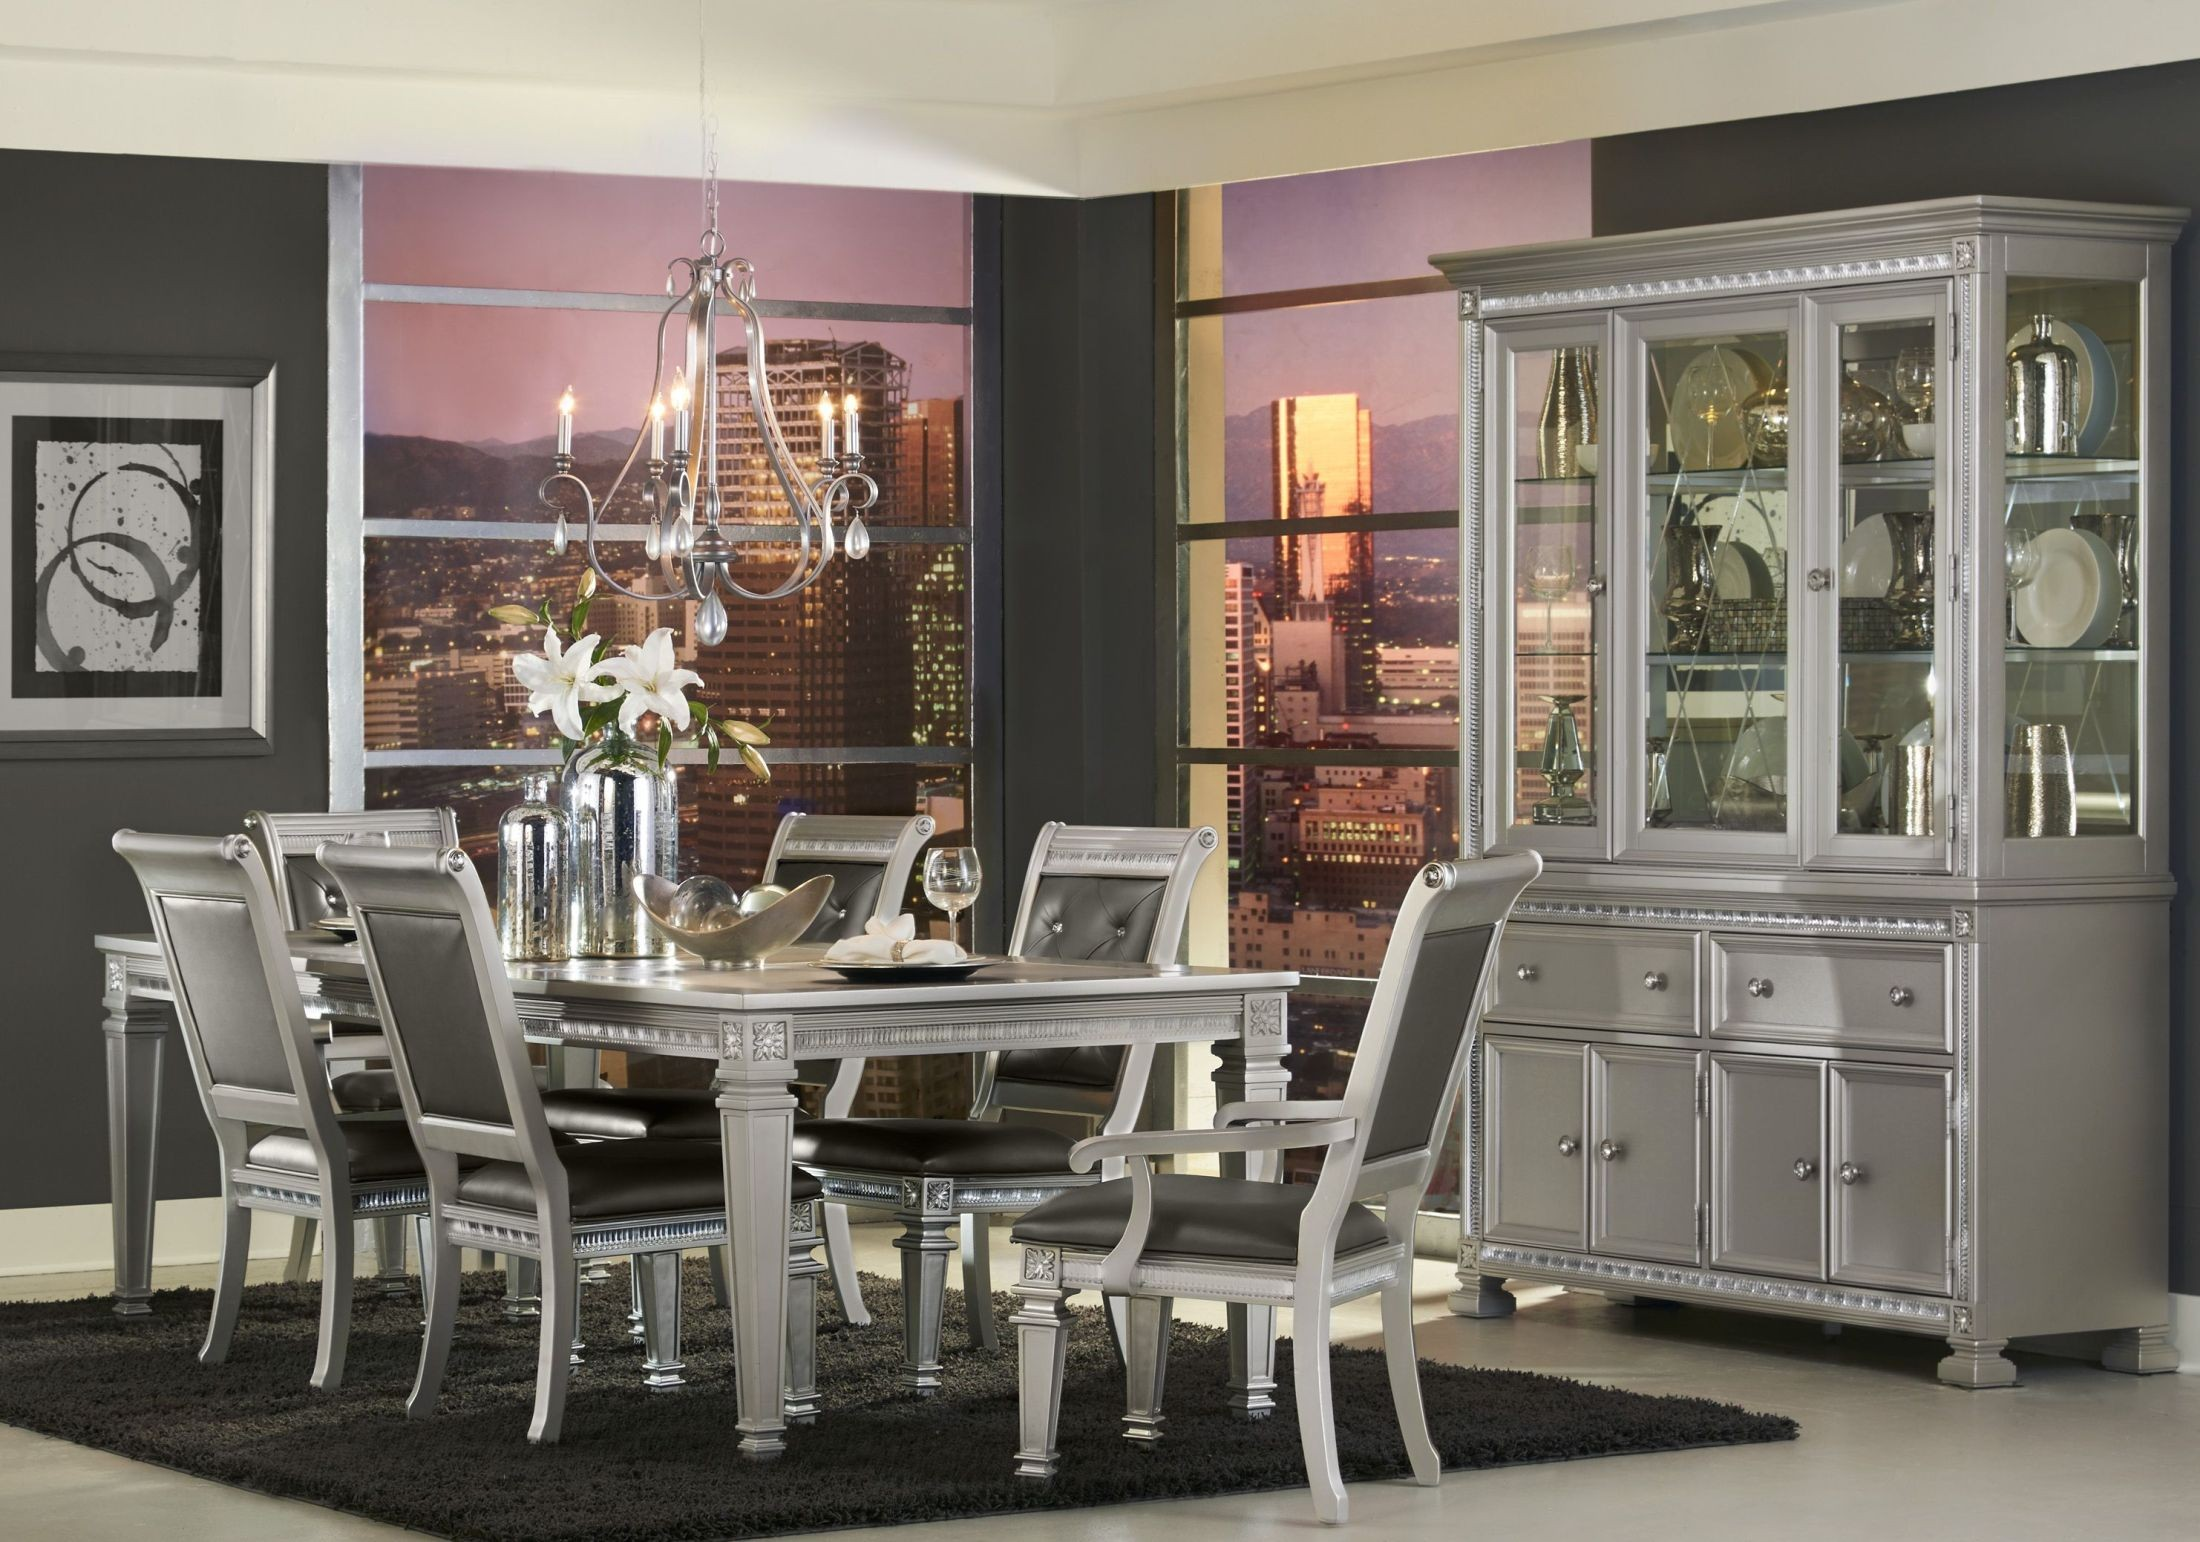 Bevelle silver extendable dining room set from homelegance coleman furniture - Black and silver dining room set designs ...